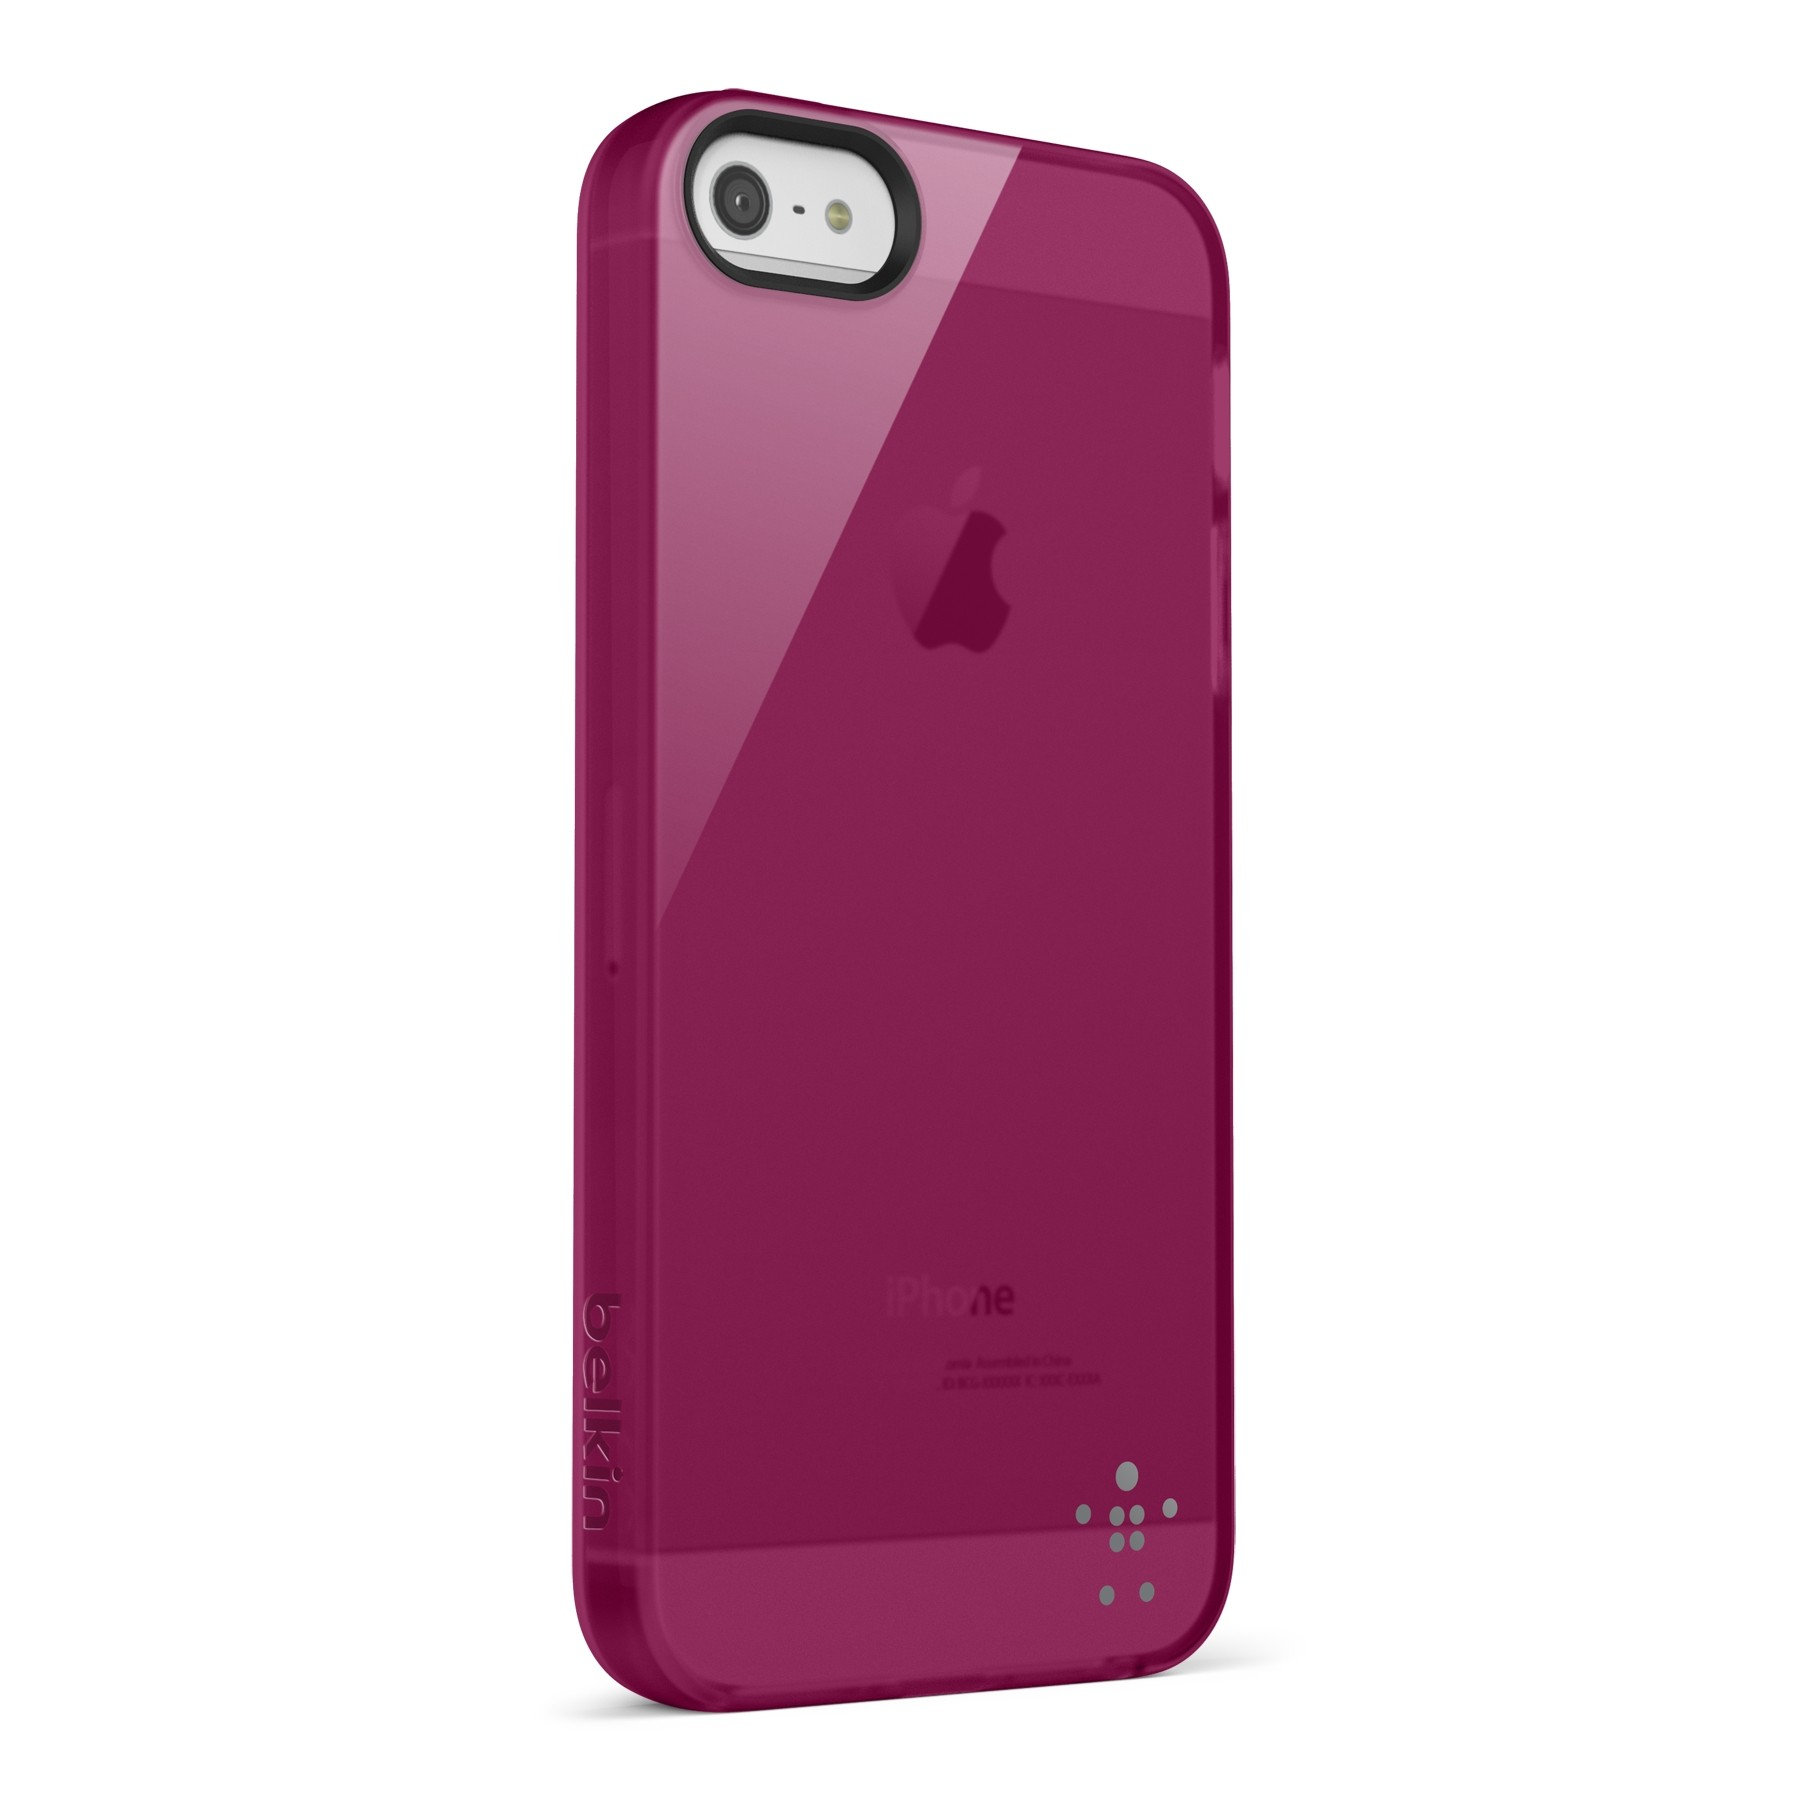 Belkin Grip Sheer Blacktop Case til iPhone 5 - Magenta